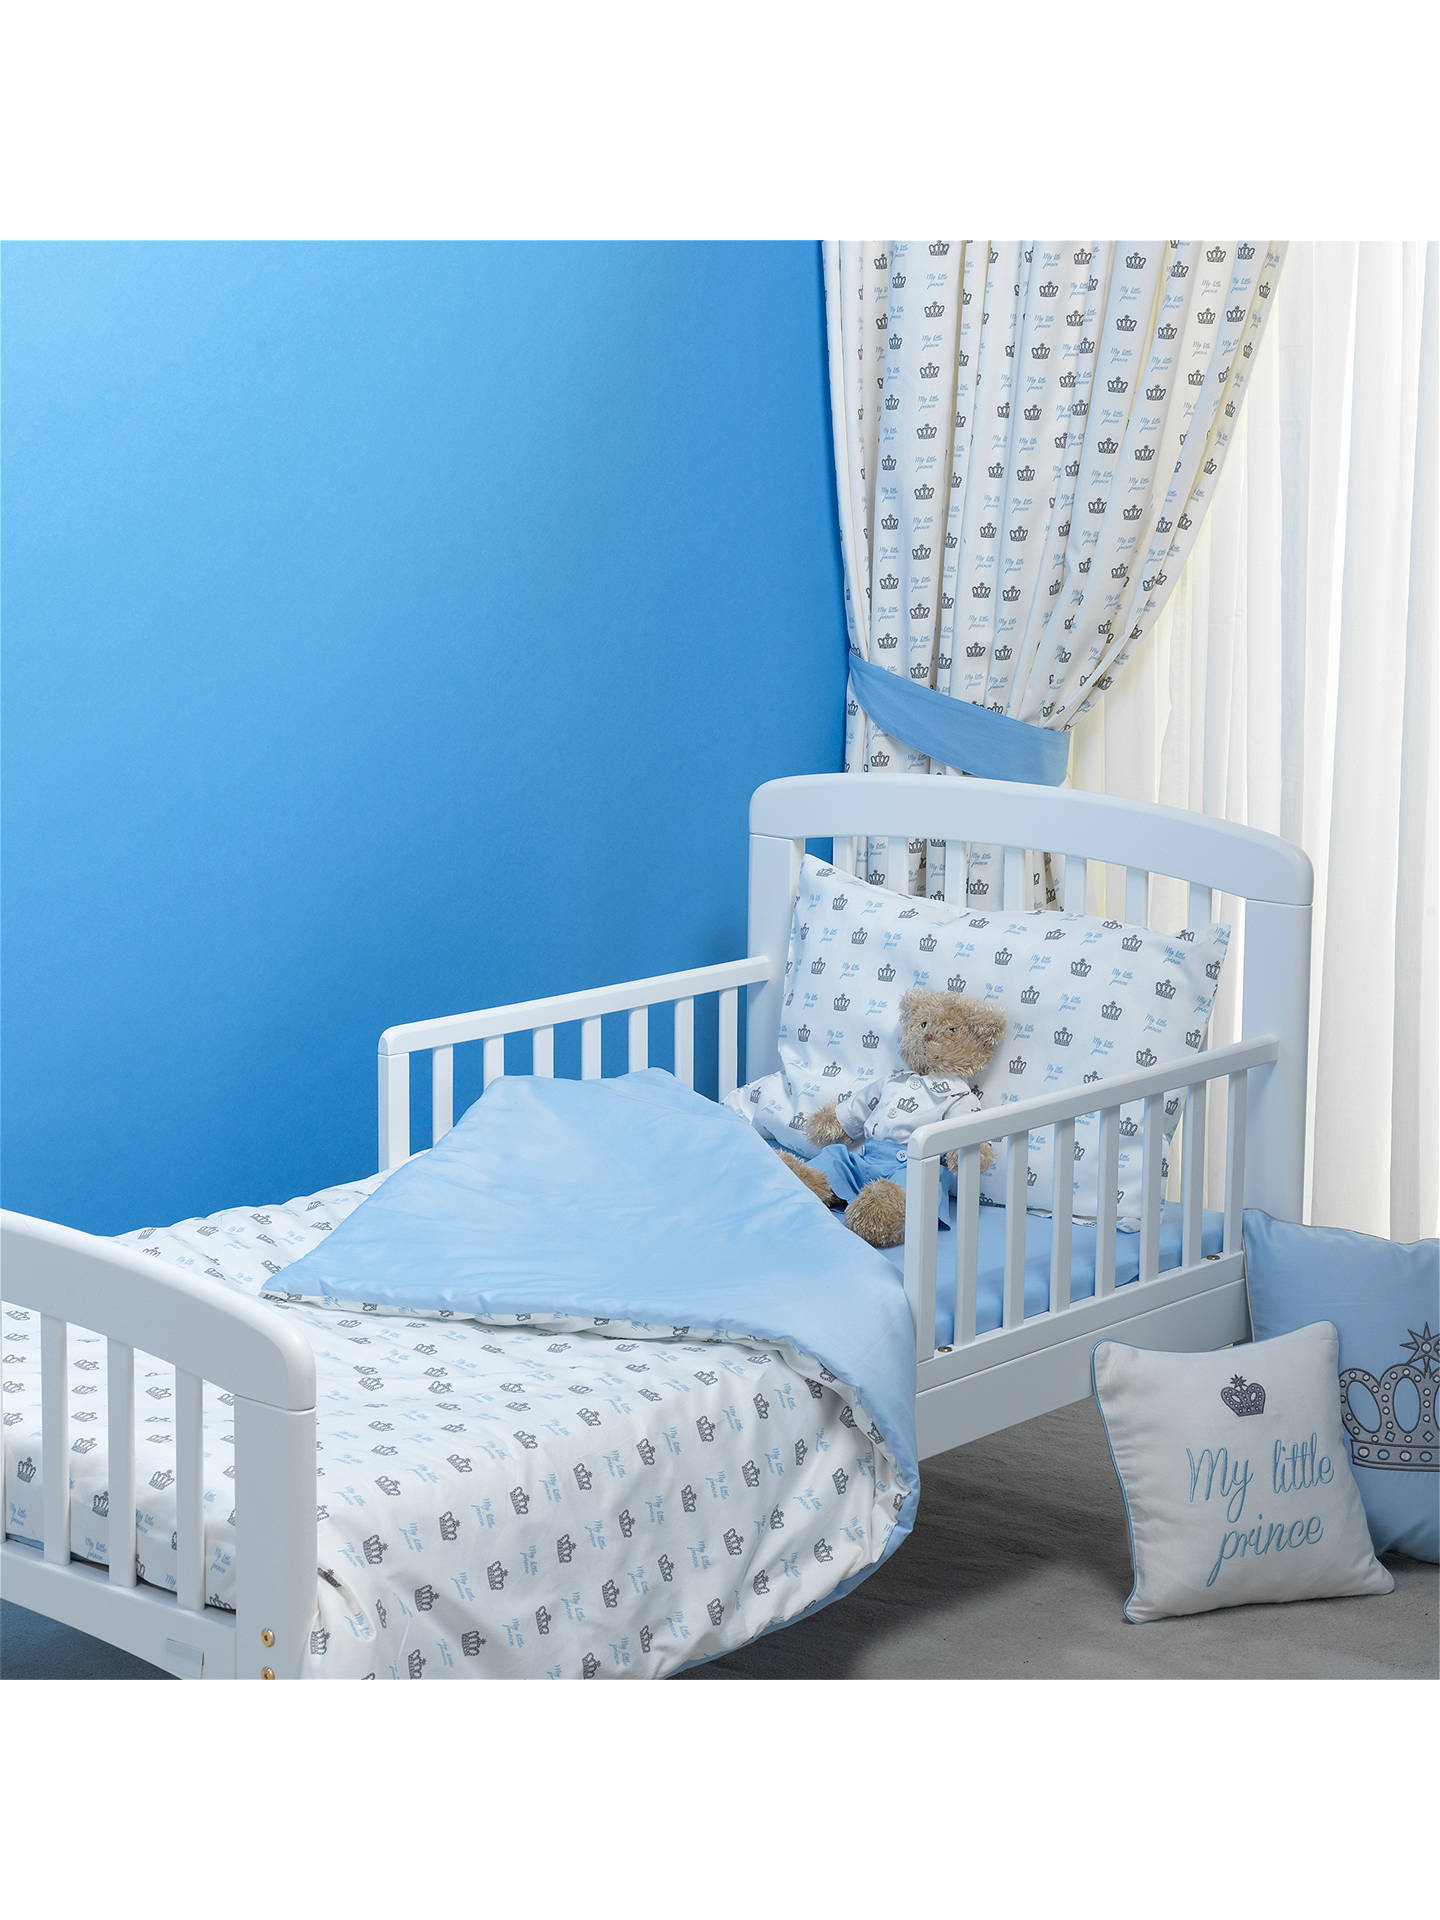 Buy Rachel Riley My Little Prince Duvet Cover and Pillowcase Set, Single, Light Blue Online at johnlewis.com